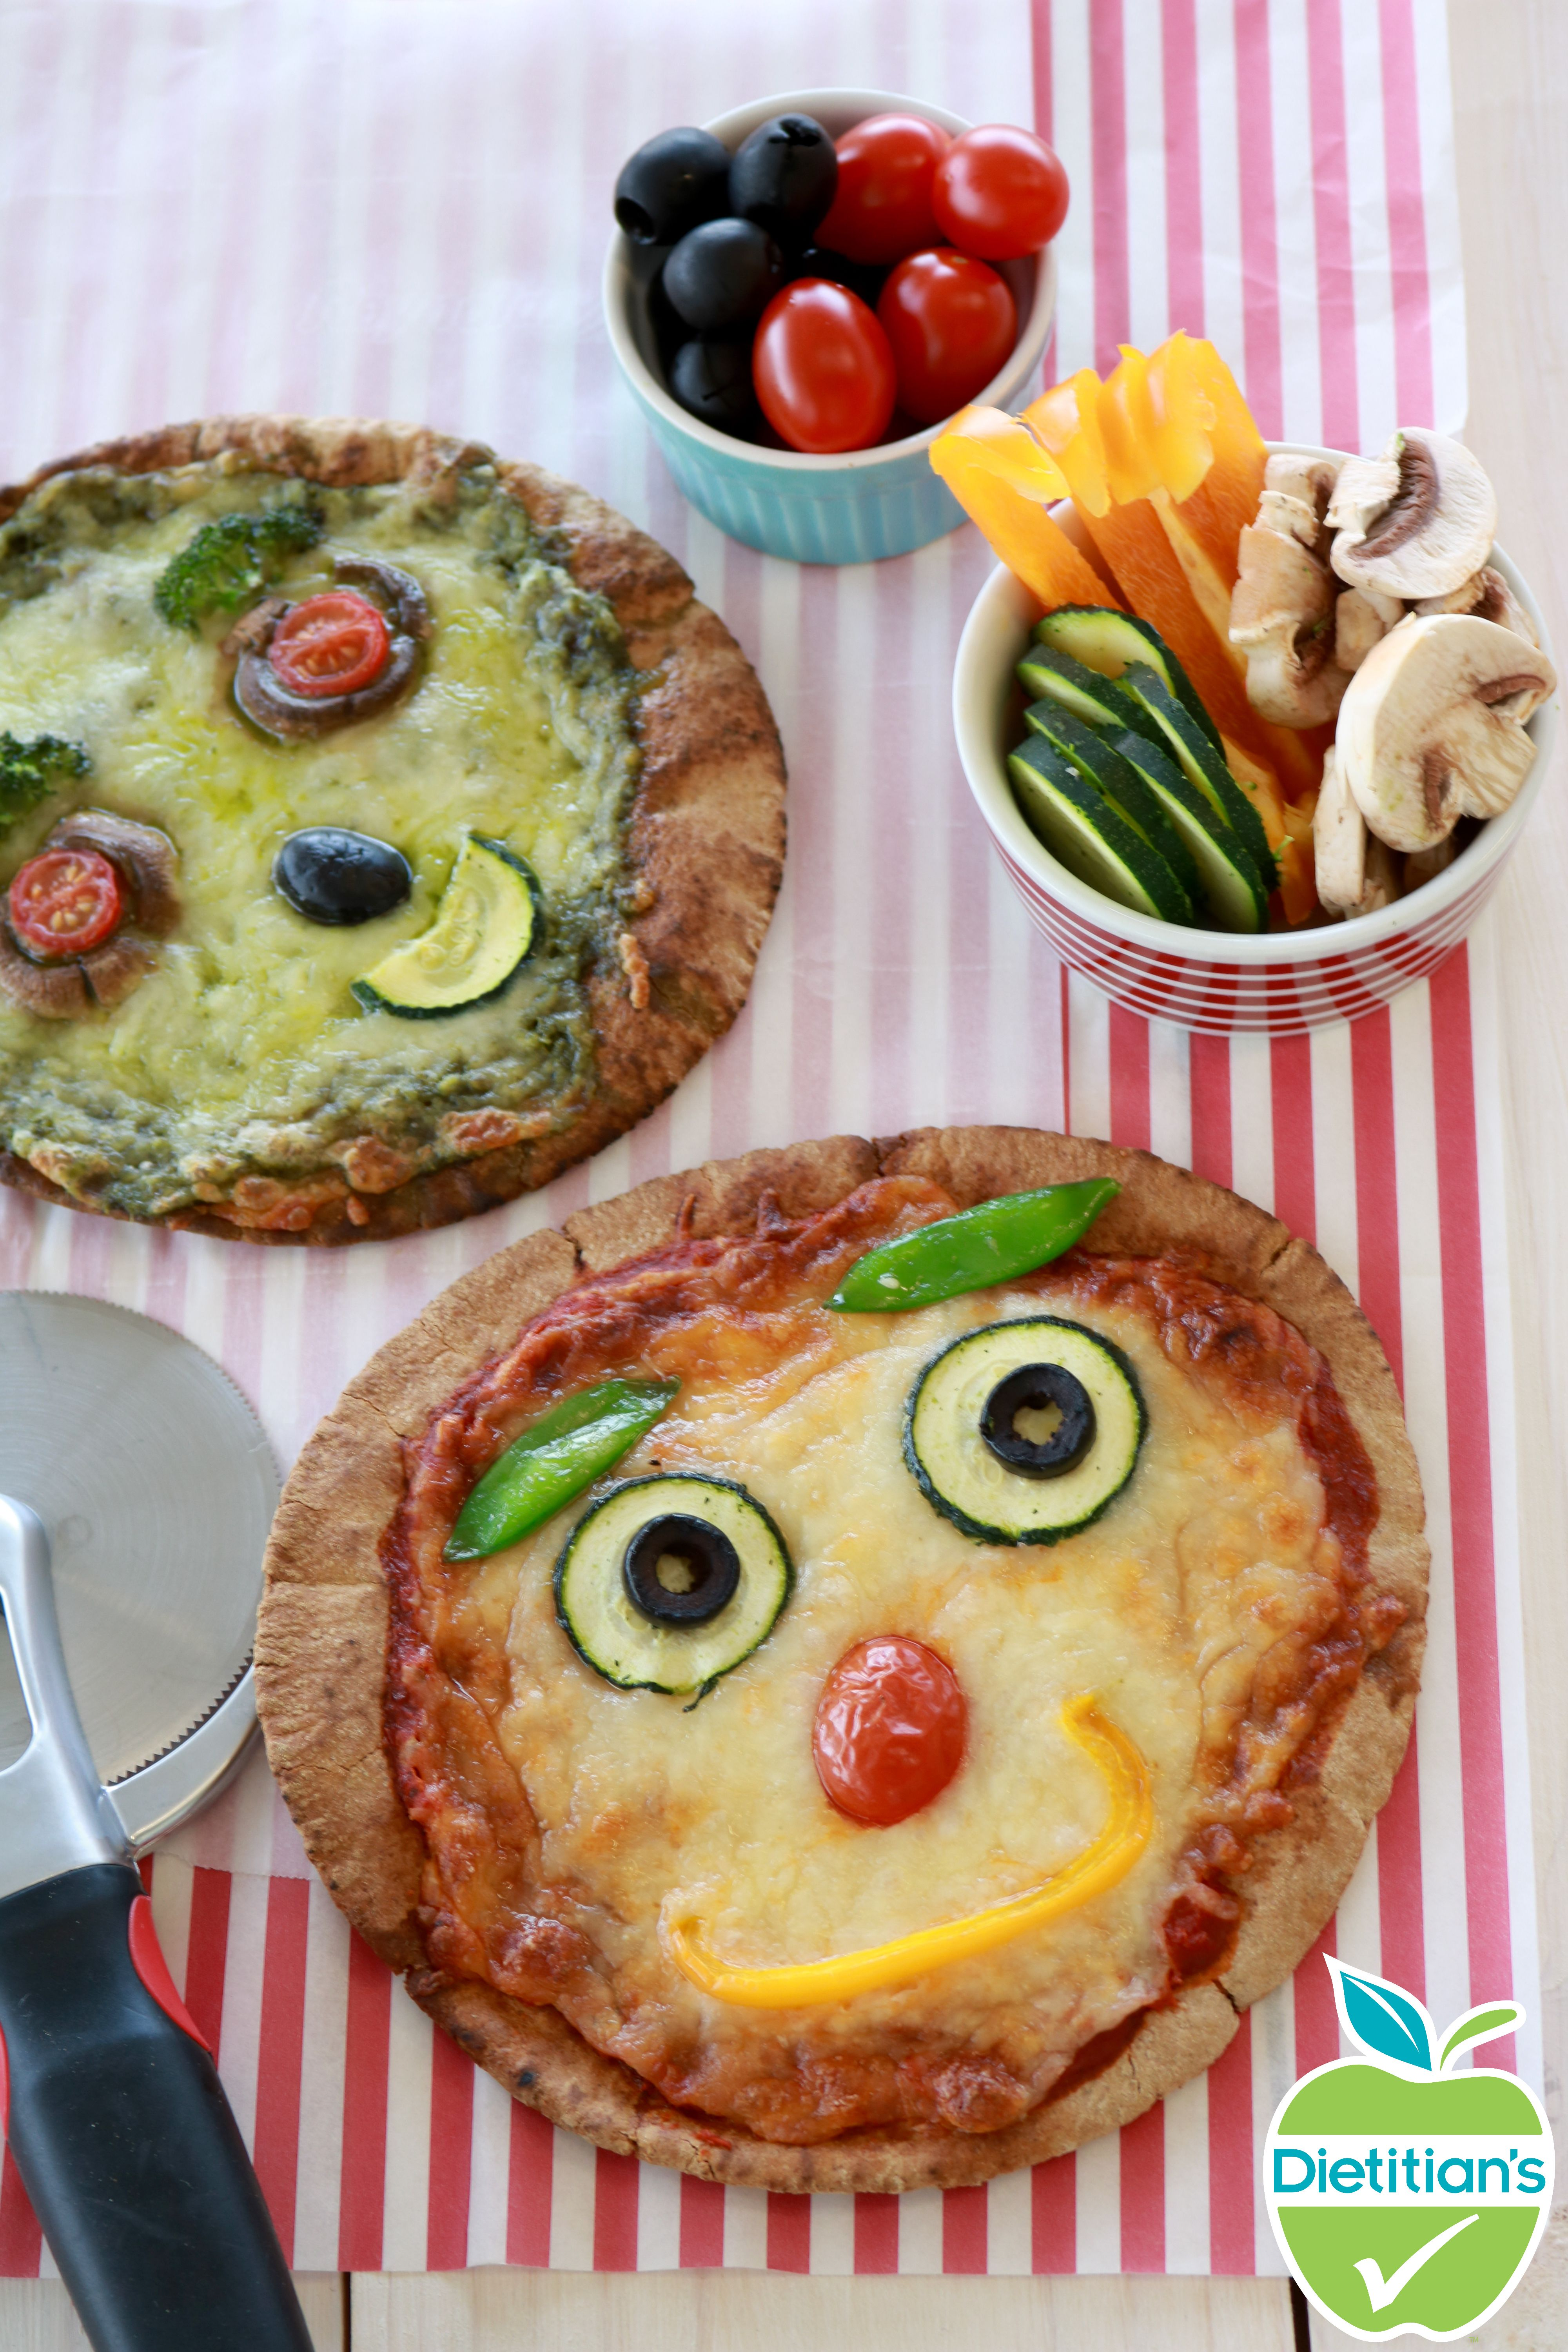 The Kids Will Love This Healthy Alternative To Pizza Let Them Get Creative And Decorate Their Own Pizza With A Ingredients Recipes Kid Approved Meals Cooking